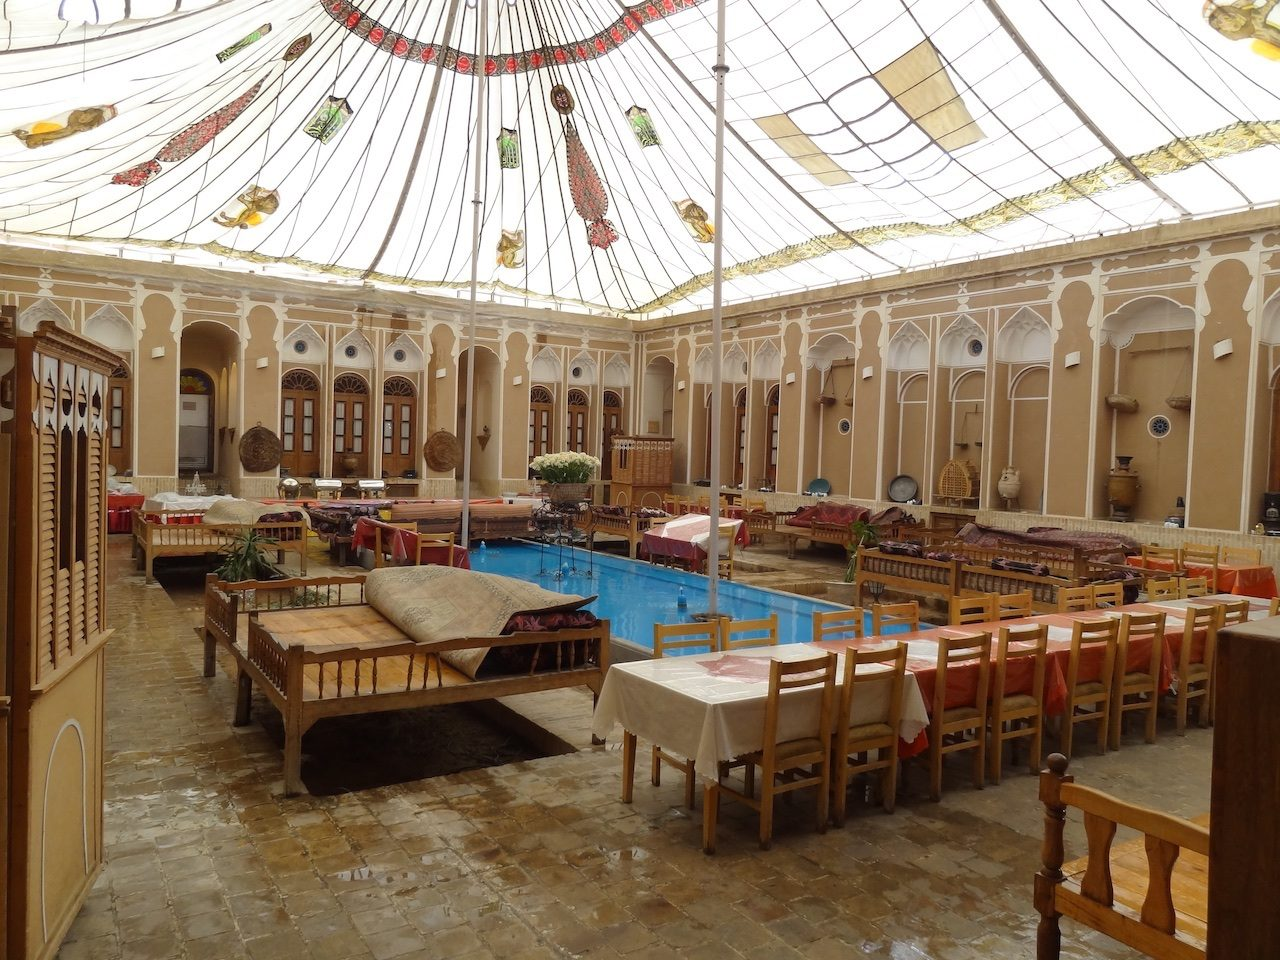 Main courtyard with pool and canvas canopy